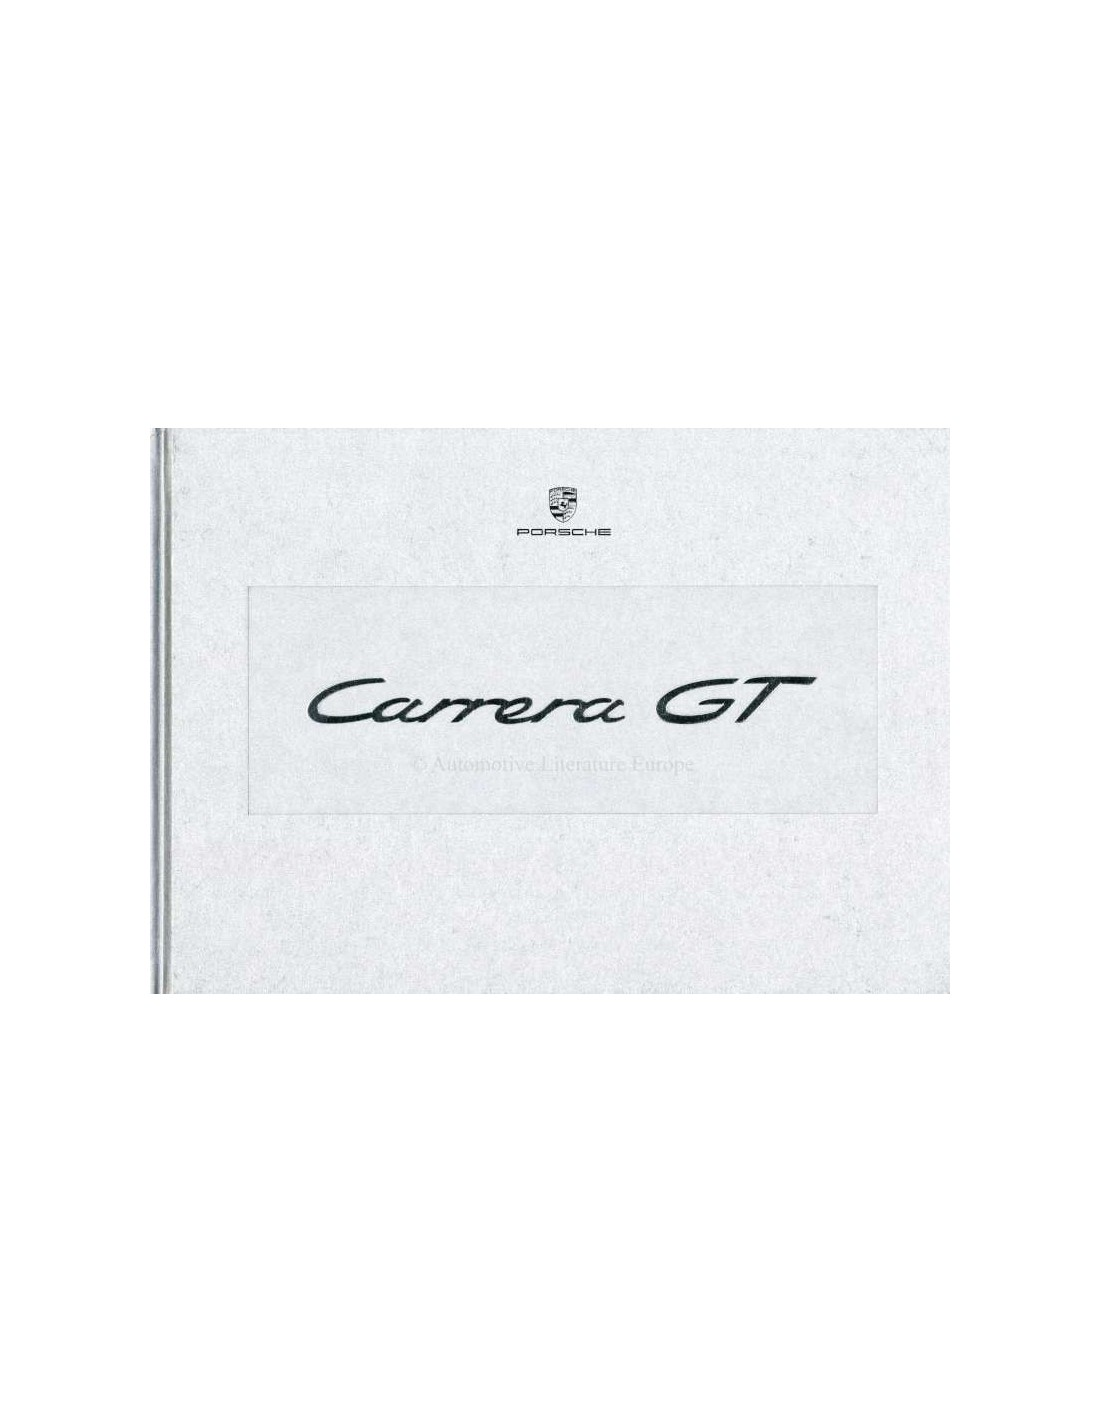 2003 PORSCHE CARRERA GT HARDBACK BROCHURE IN BOX GERMAN